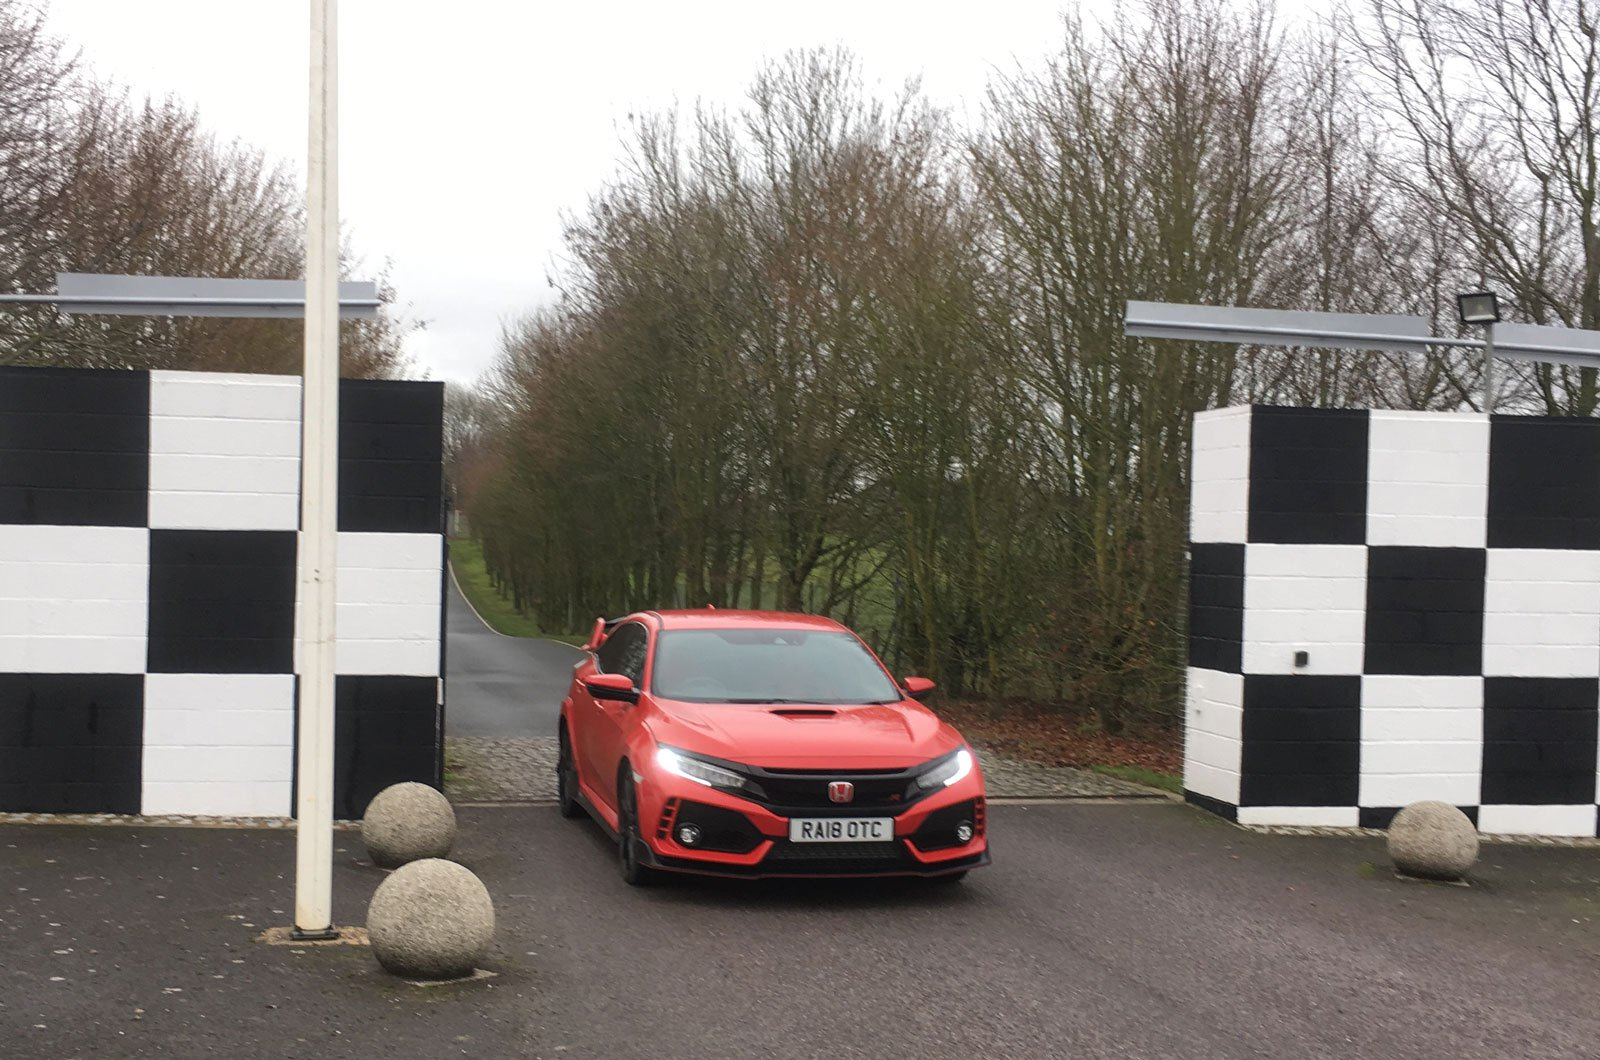 Honda Civic Type R long-termer